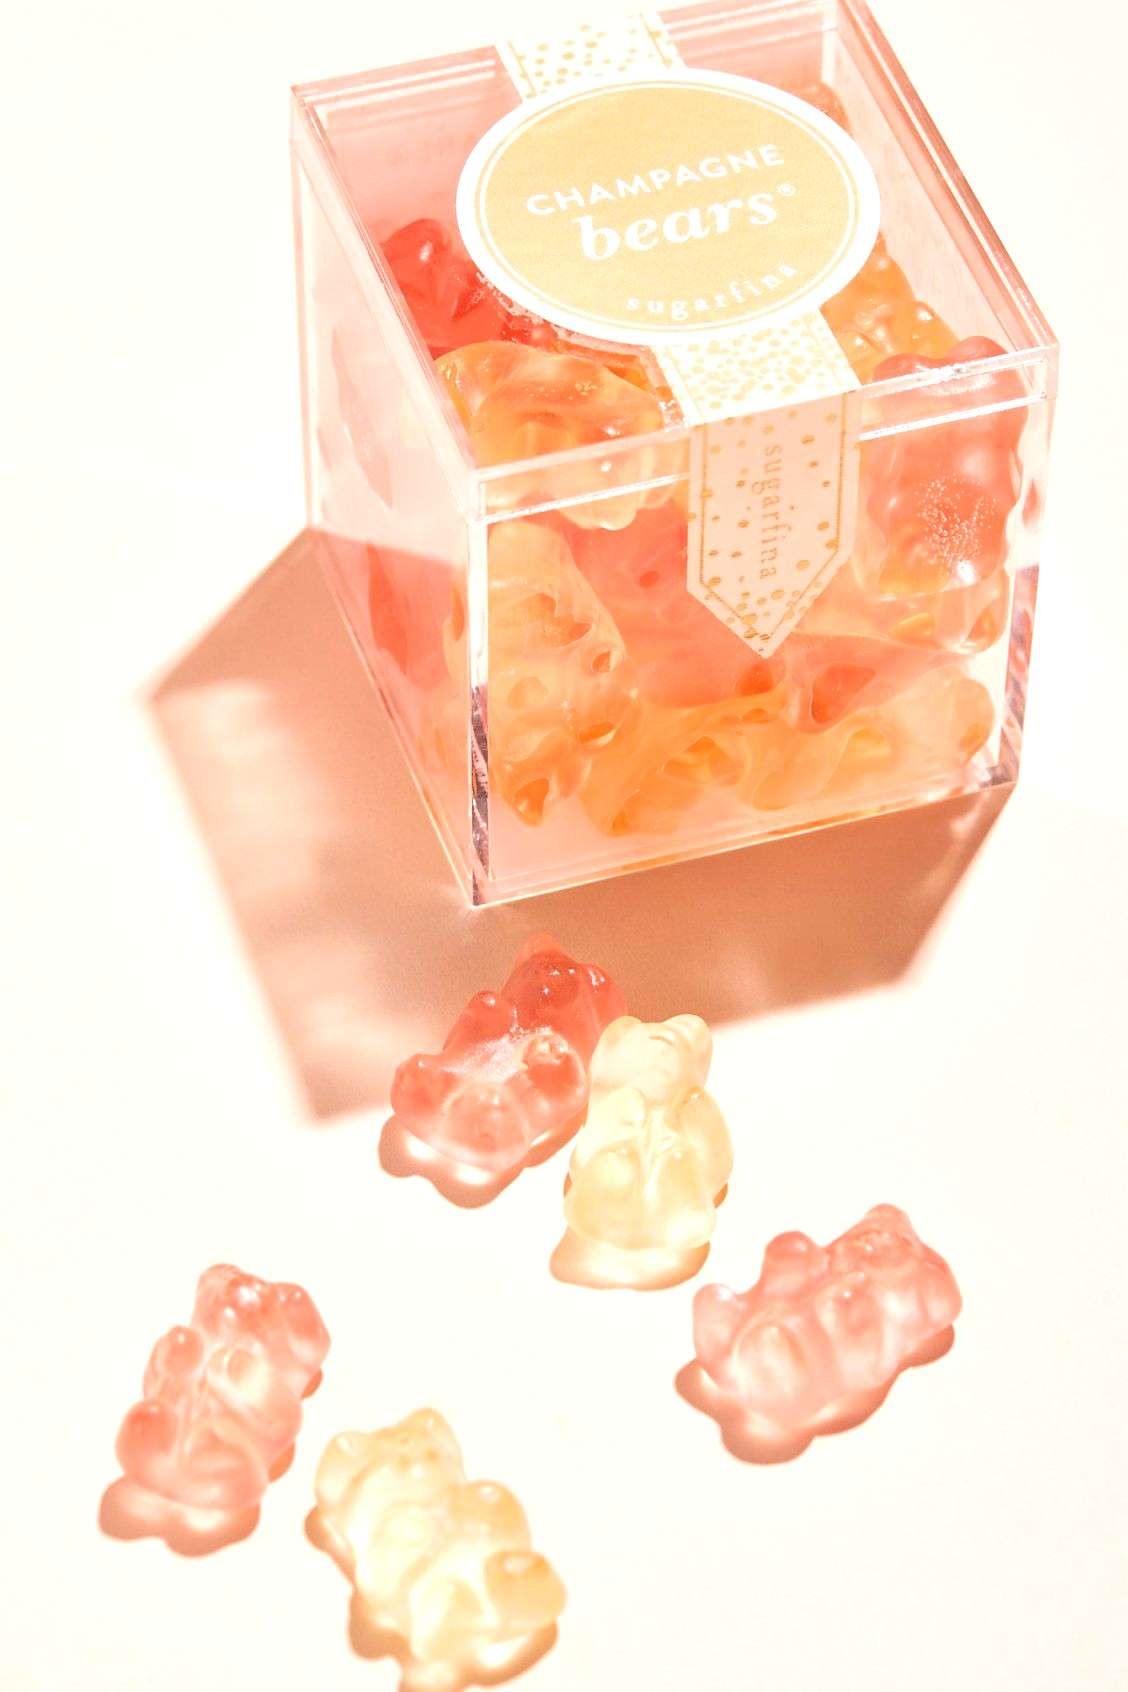 Sugarfina Champagne Bears | Free People